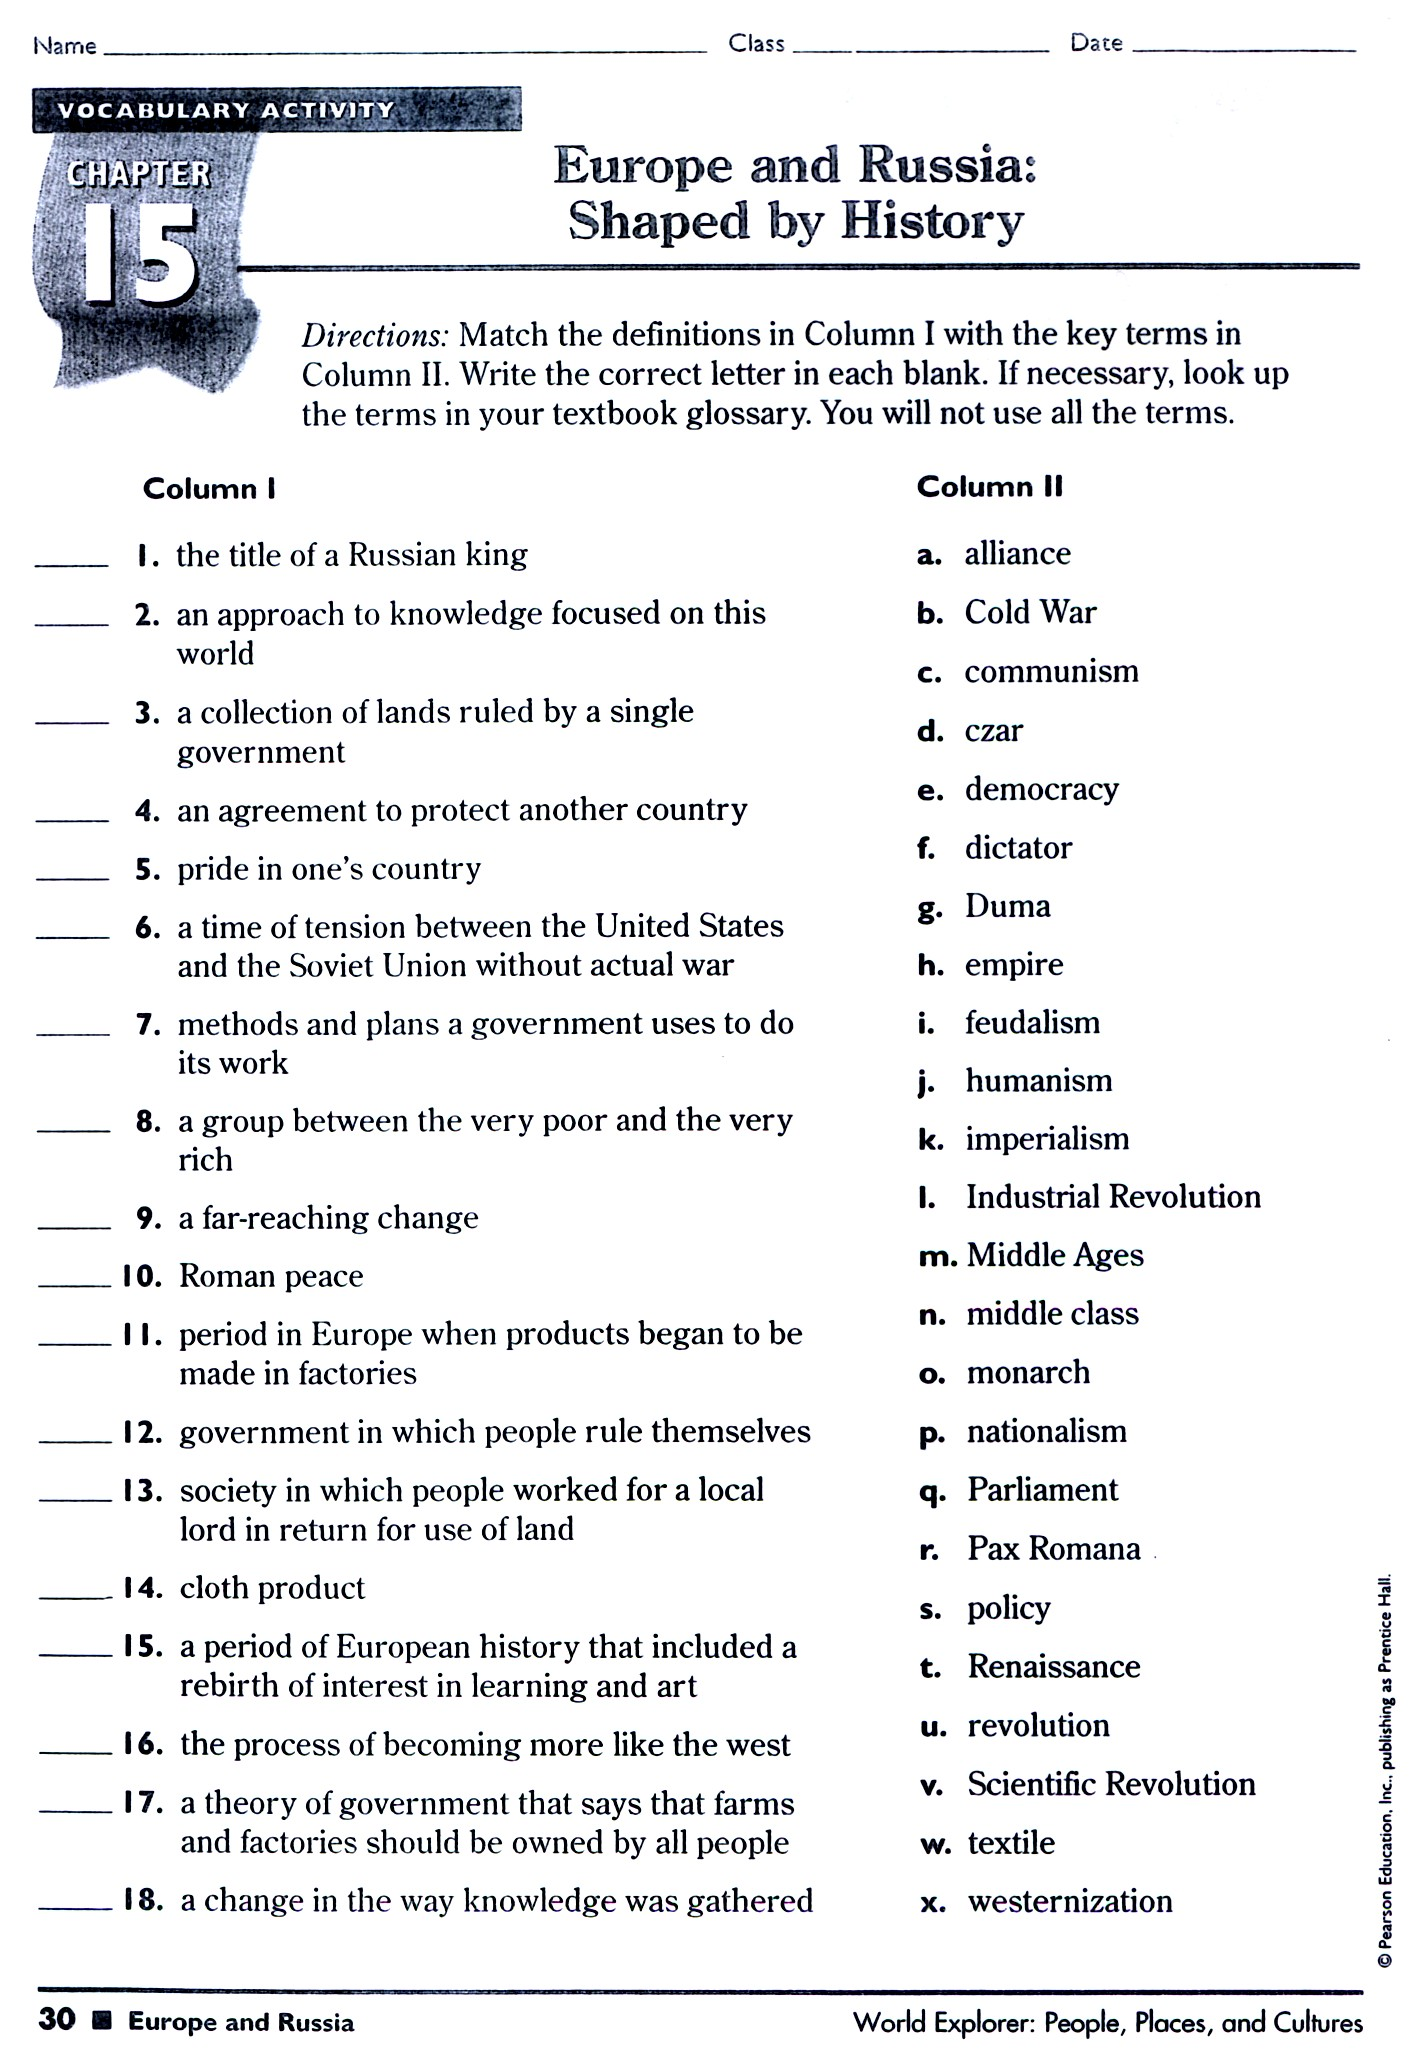 Worksheets 7th Grade Social Studies Worksheets 7th grade history worksheets free library download 1000 images about texas on pinterest